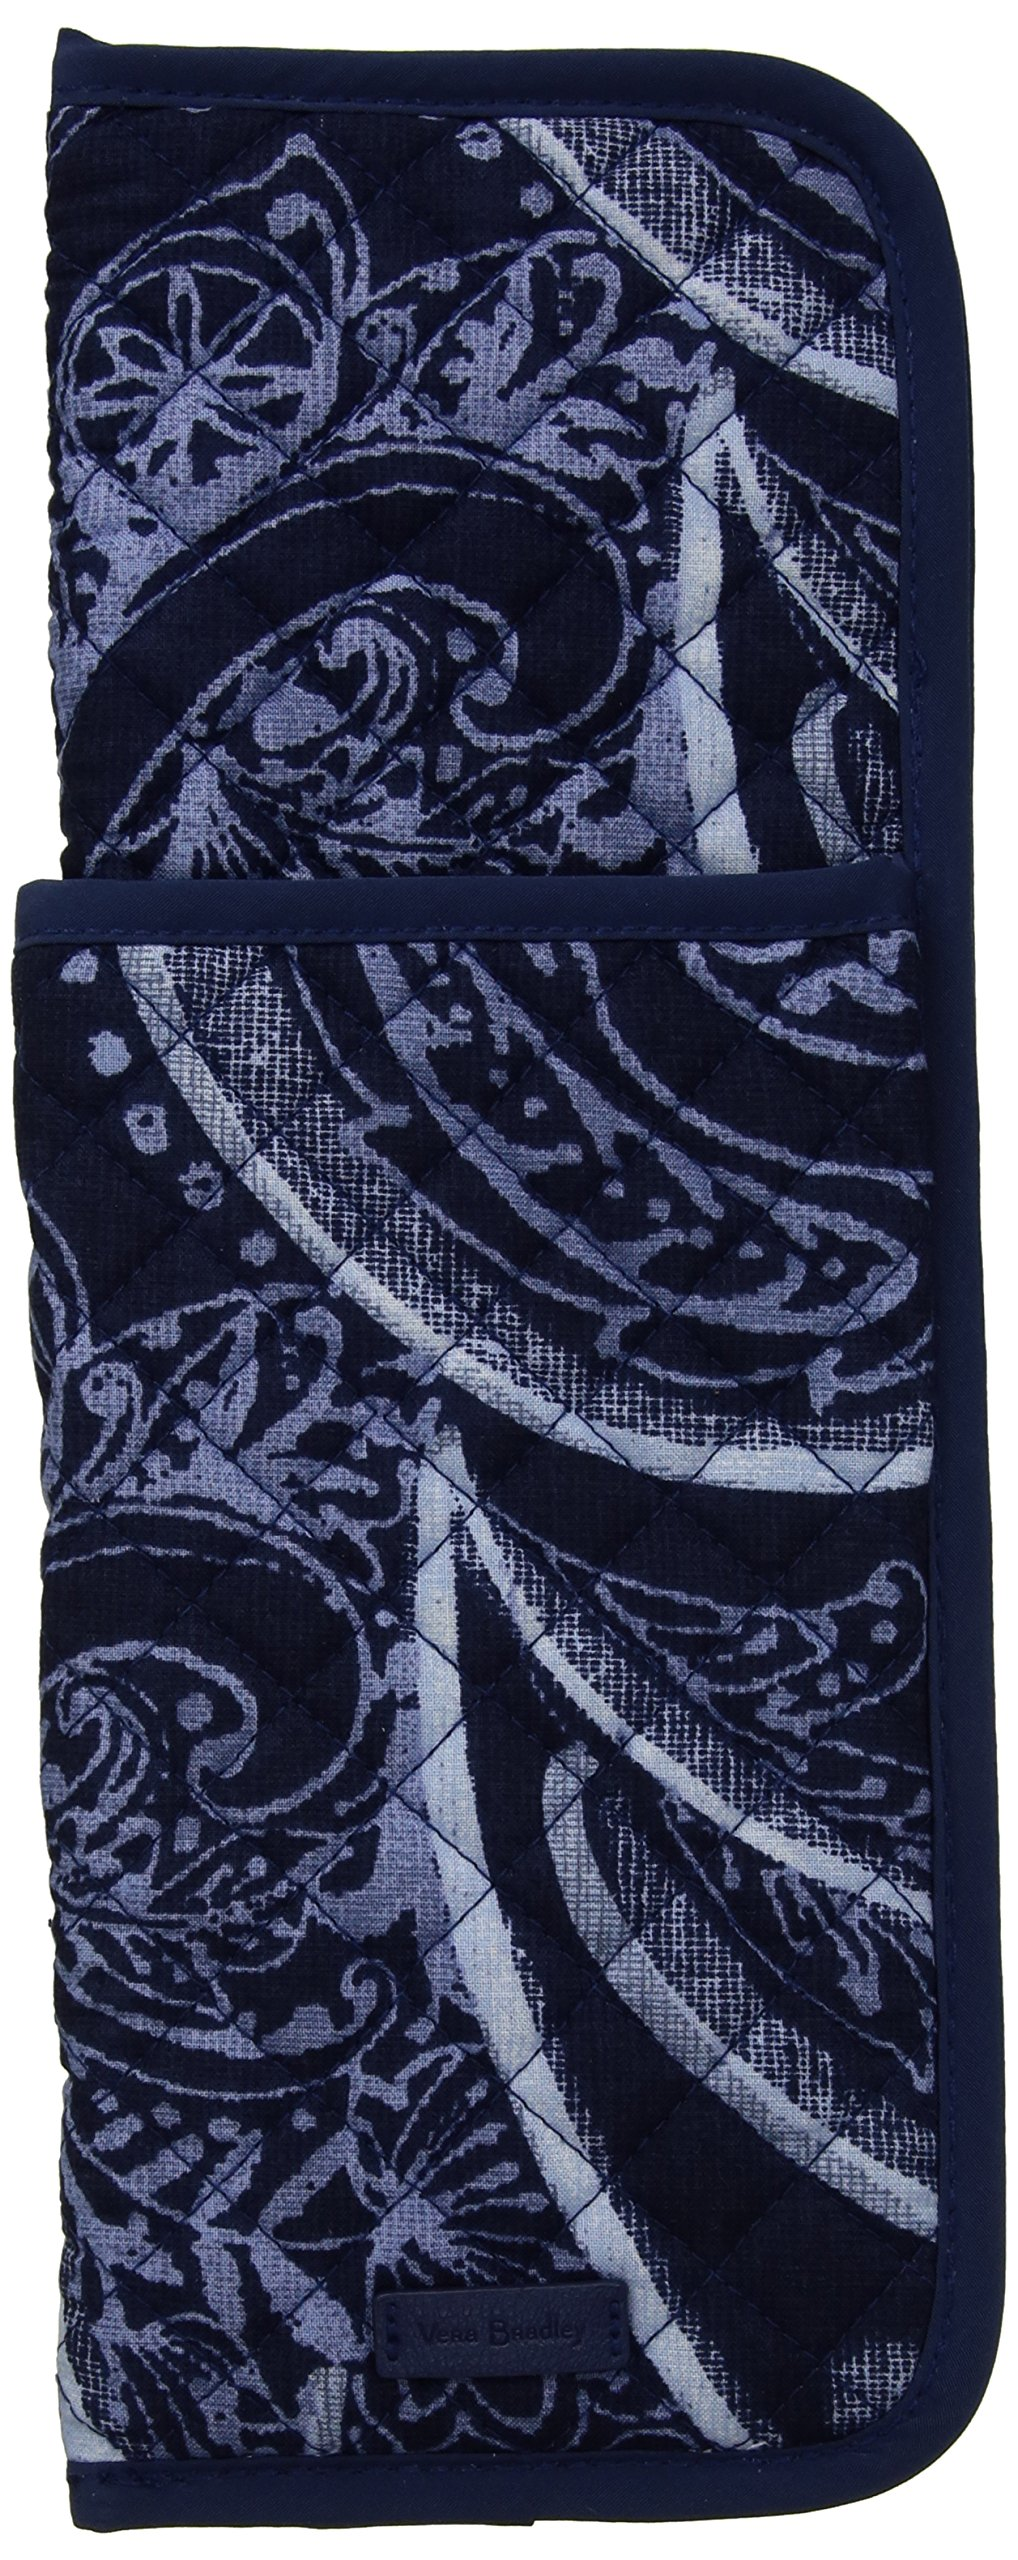 Vera Bradley Iconic Curling and Flat Iron Cover, Signature Cotton, Indio